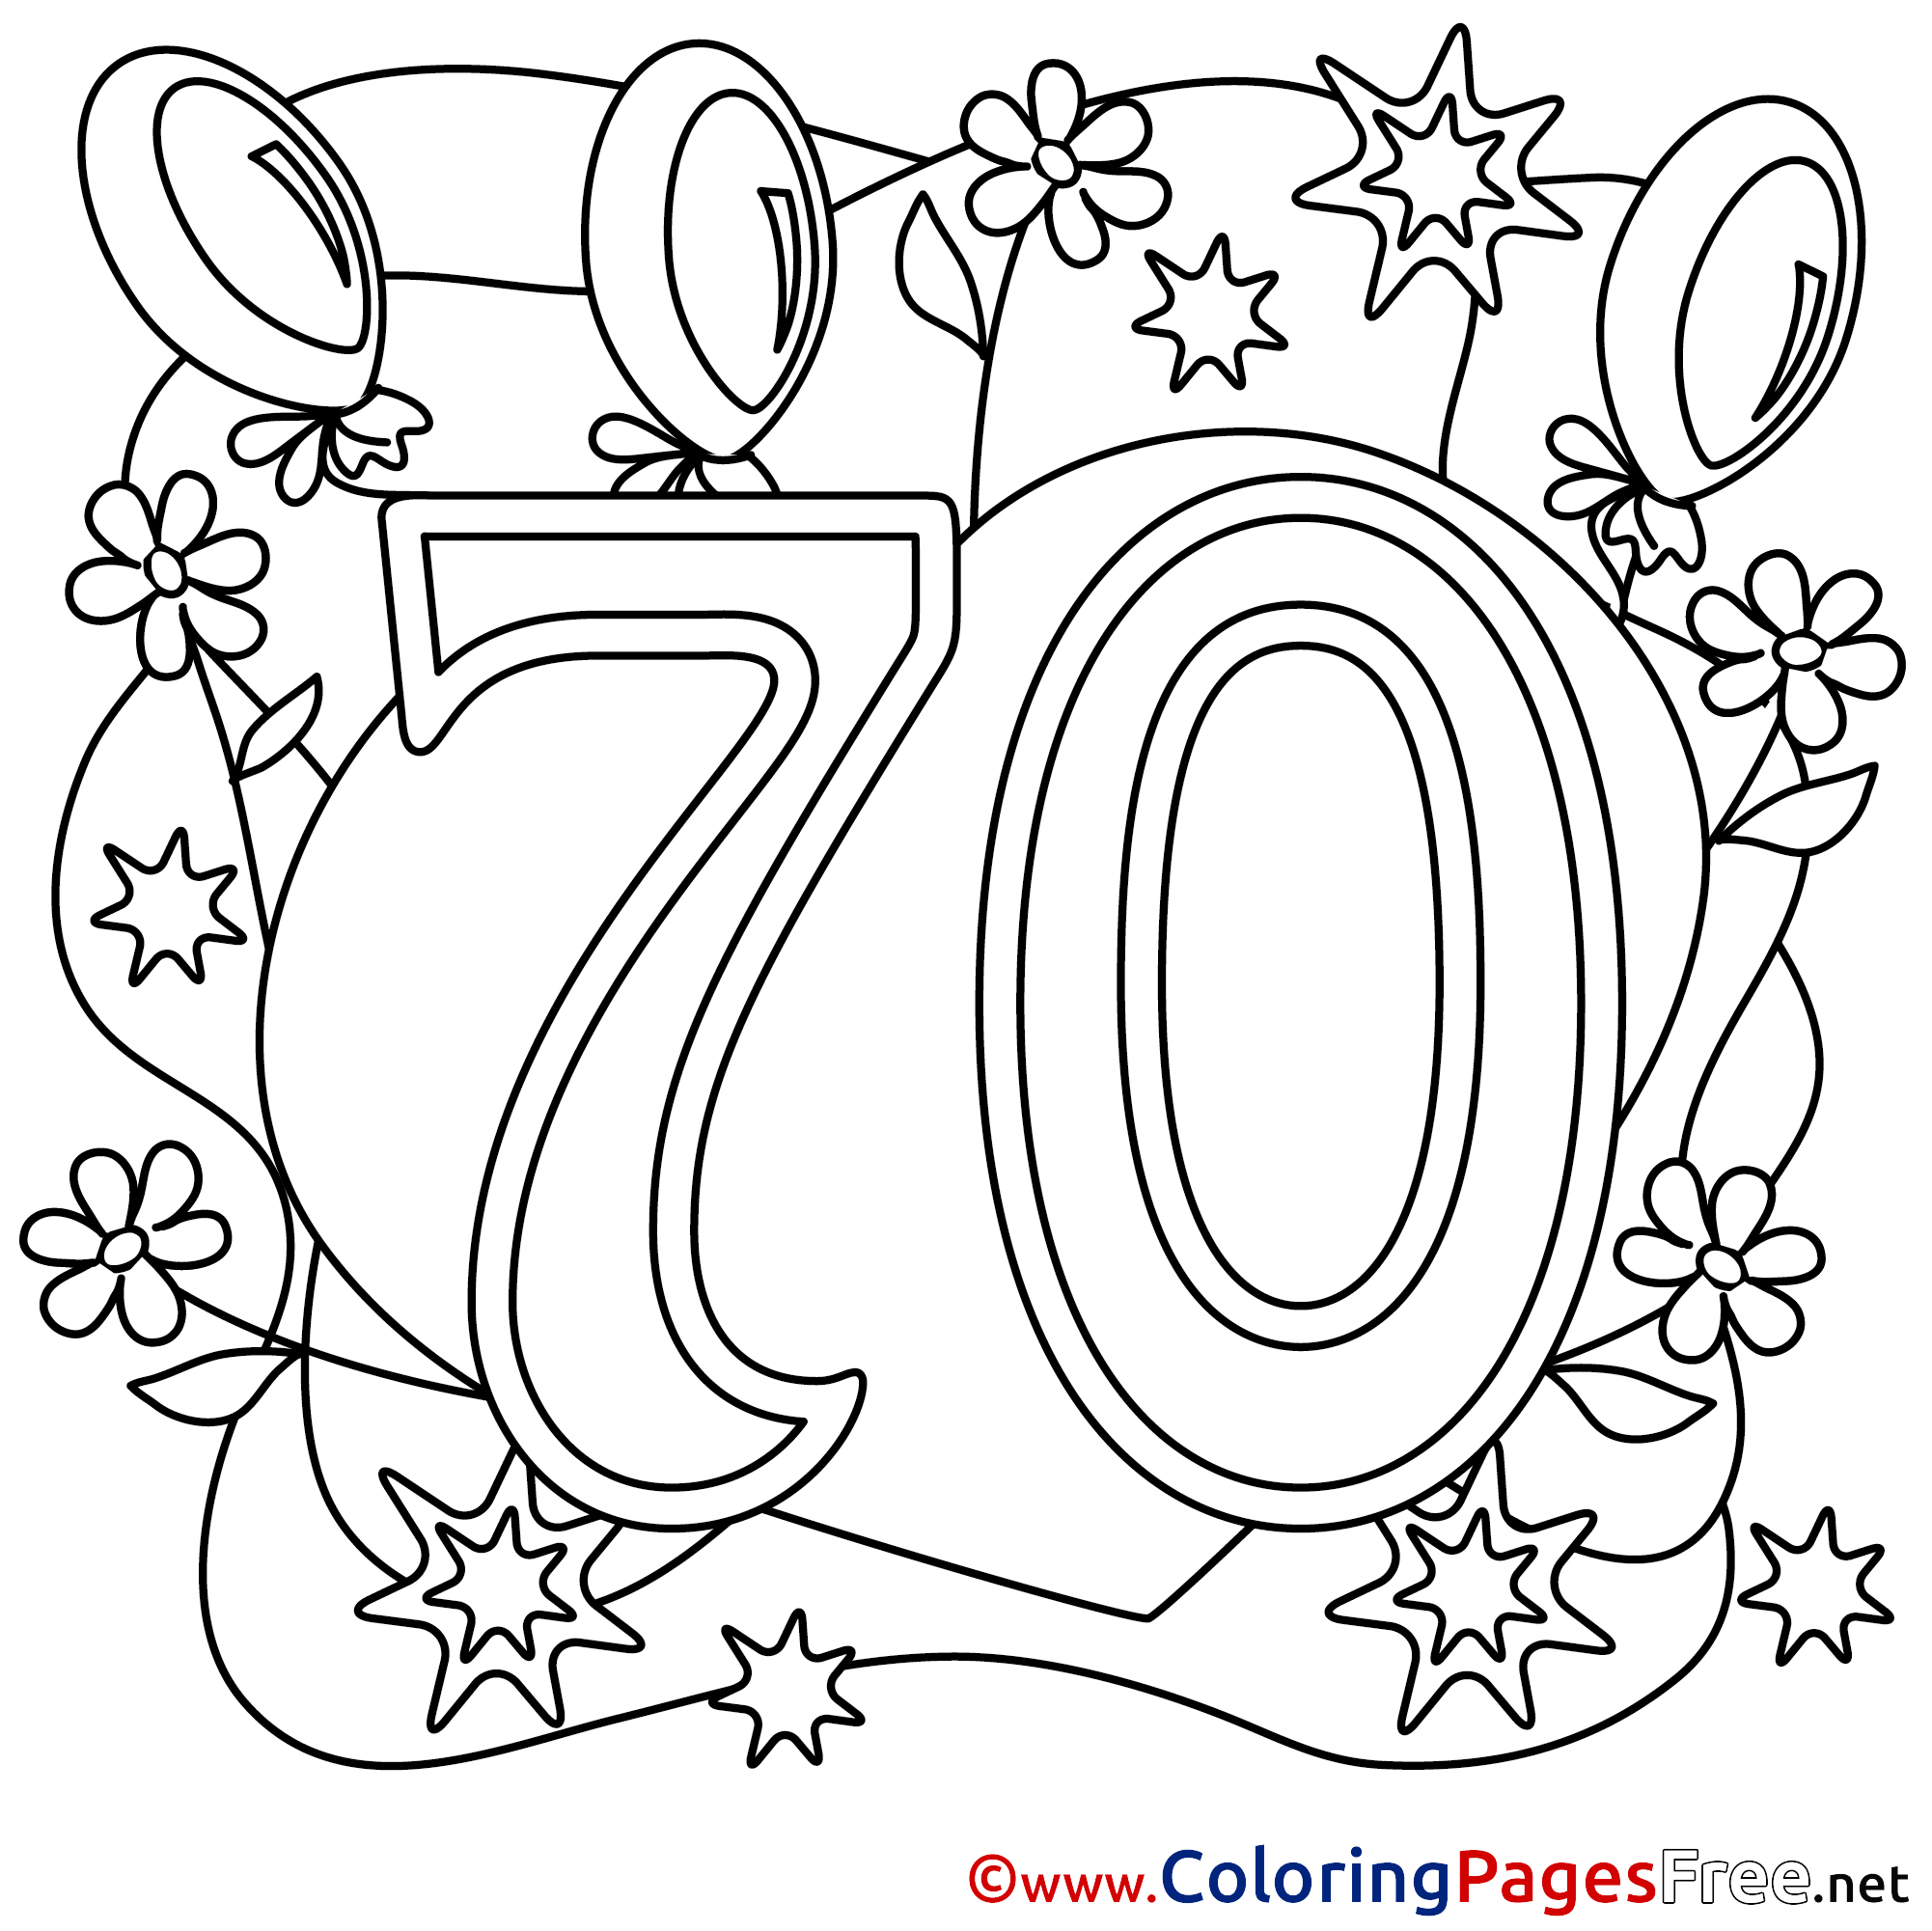 happy 70th birthday coloring pages happy 70th birthday grandma coloring page twisty noodle 70th happy birthday coloring pages